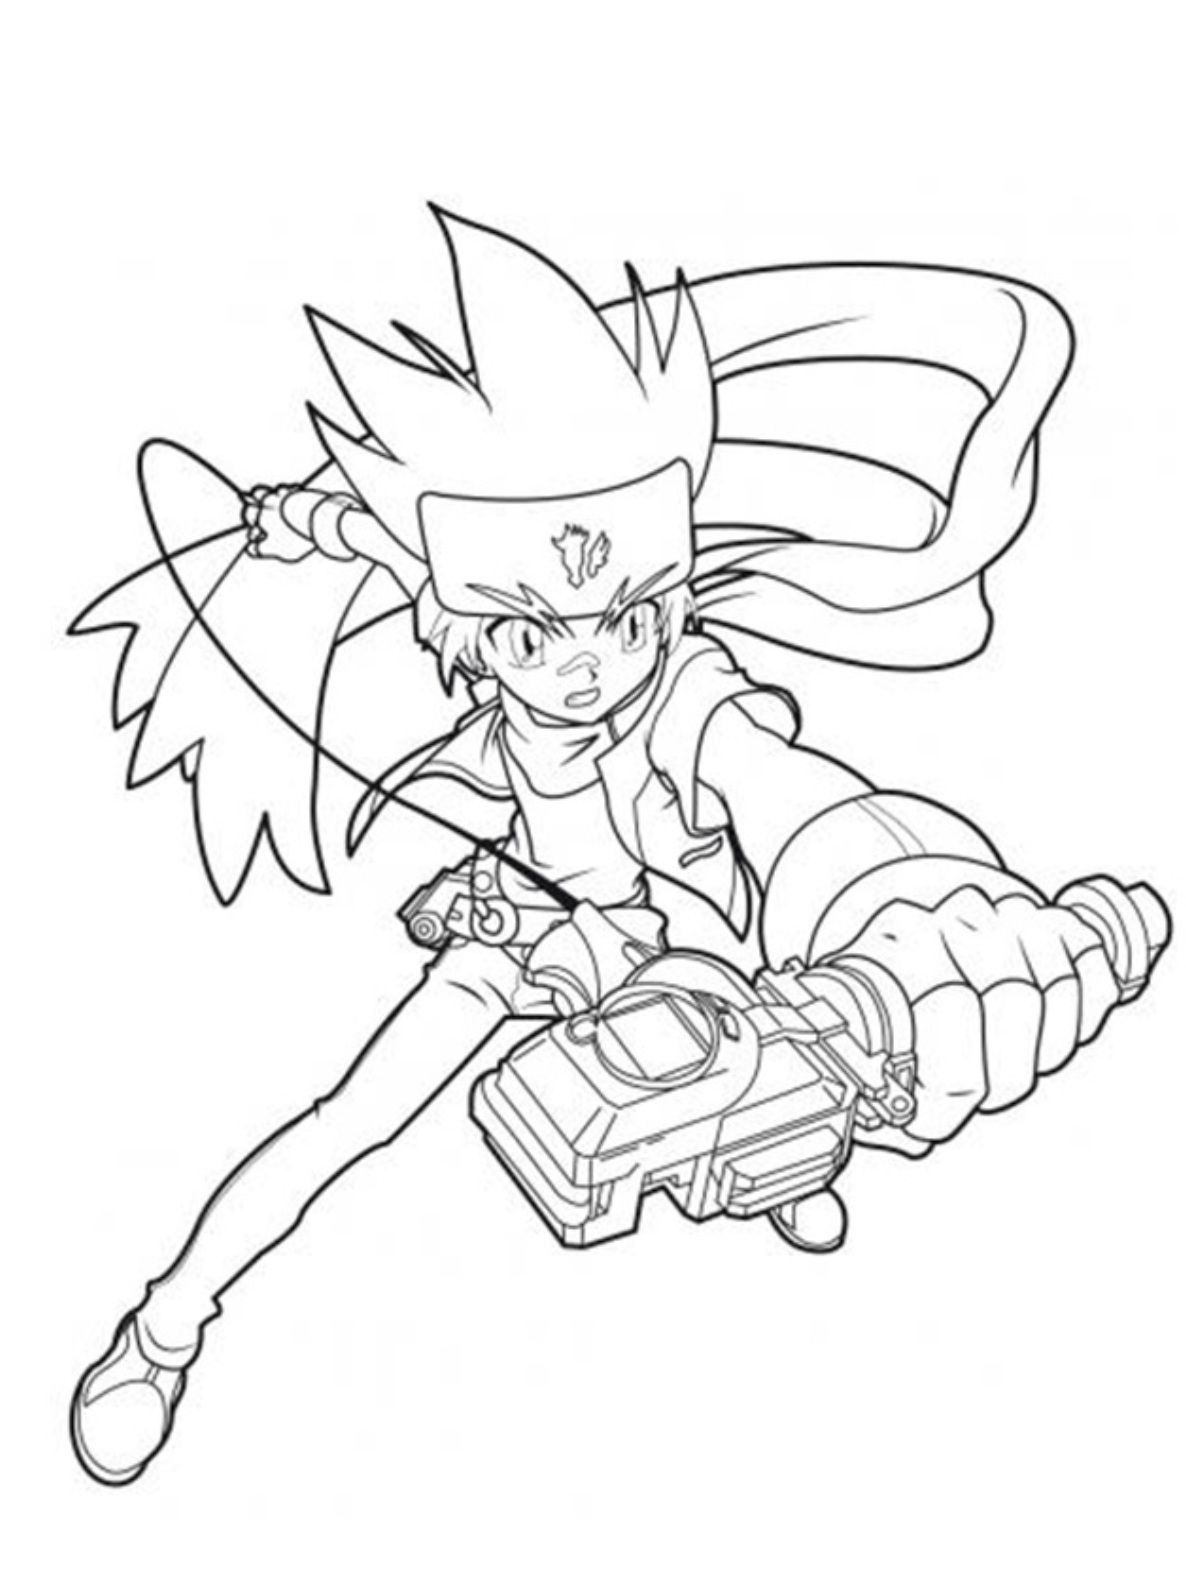 beyblade pegasus coloring pages beyblade coloring pages for kids in 2020 coloring pages beyblade pages pegasus coloring